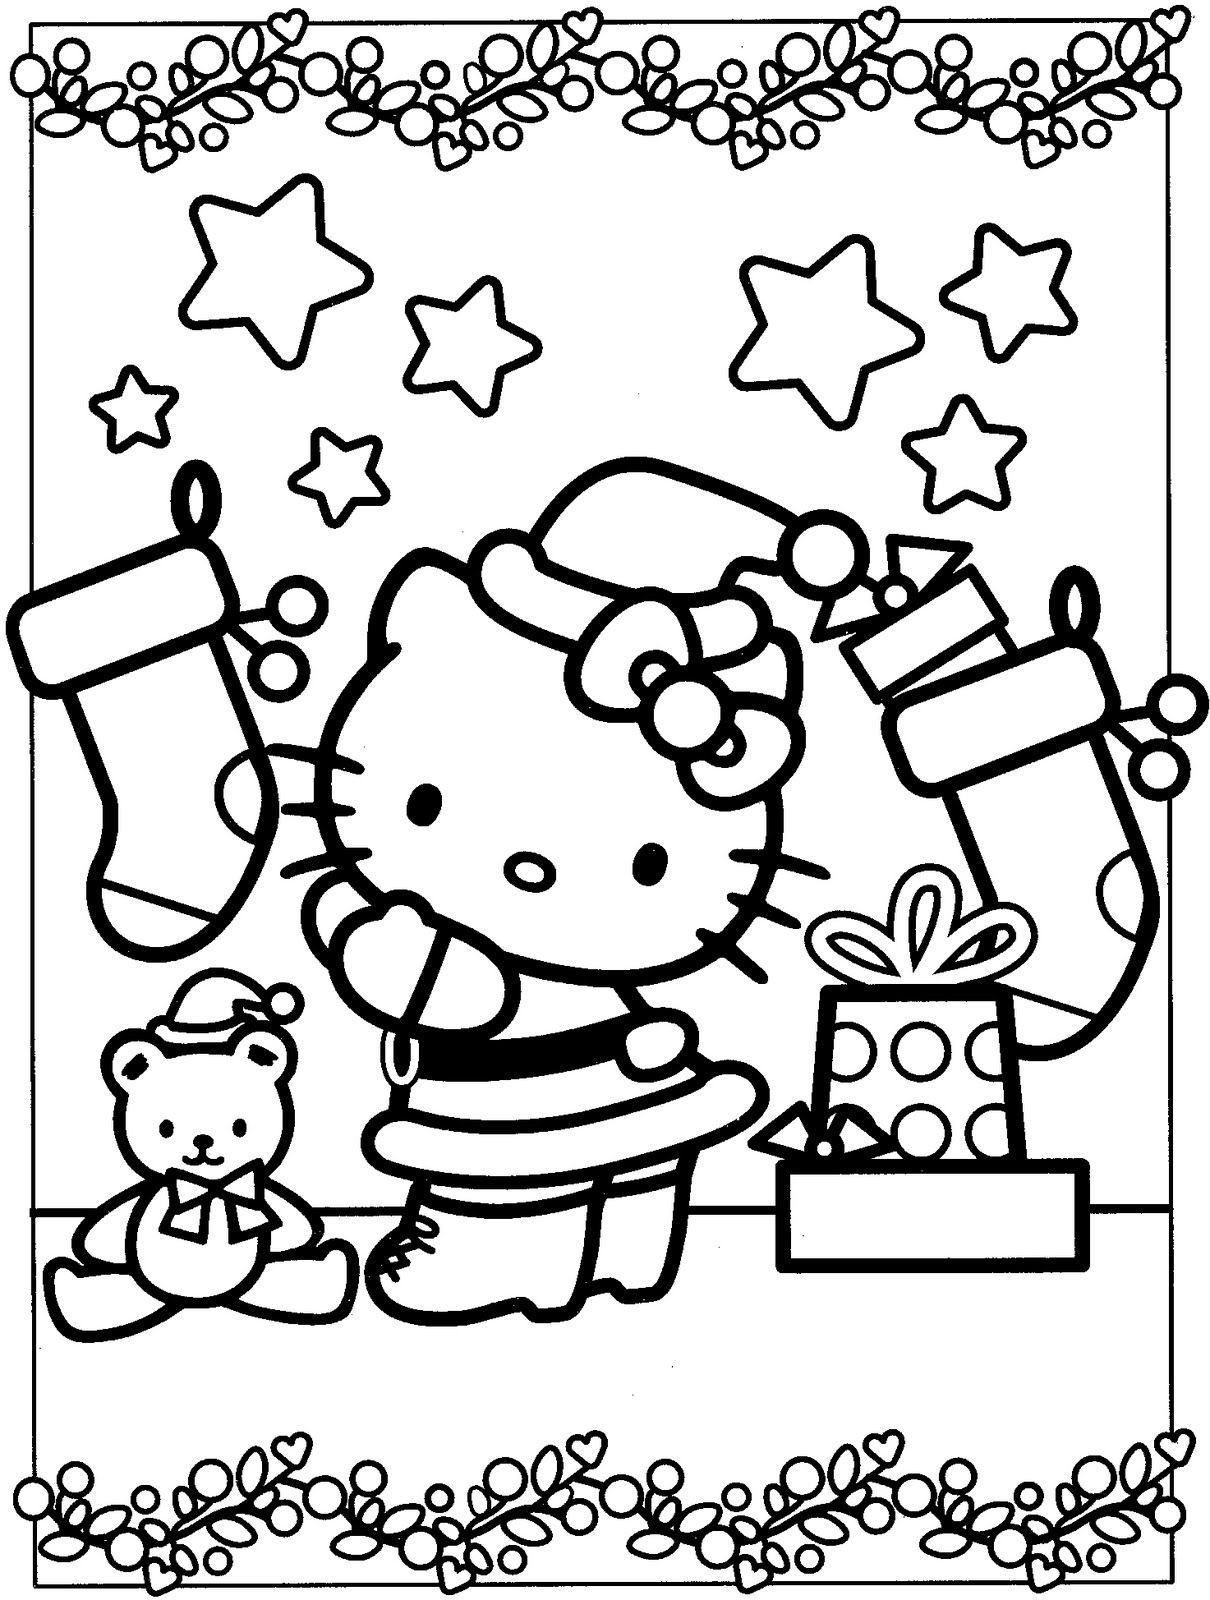 Hello Kitty Angel Coloring Pages Free Coloring Pages Hello Kitty Coloring Kitty Coloring Hello Kitty Colouring Pages